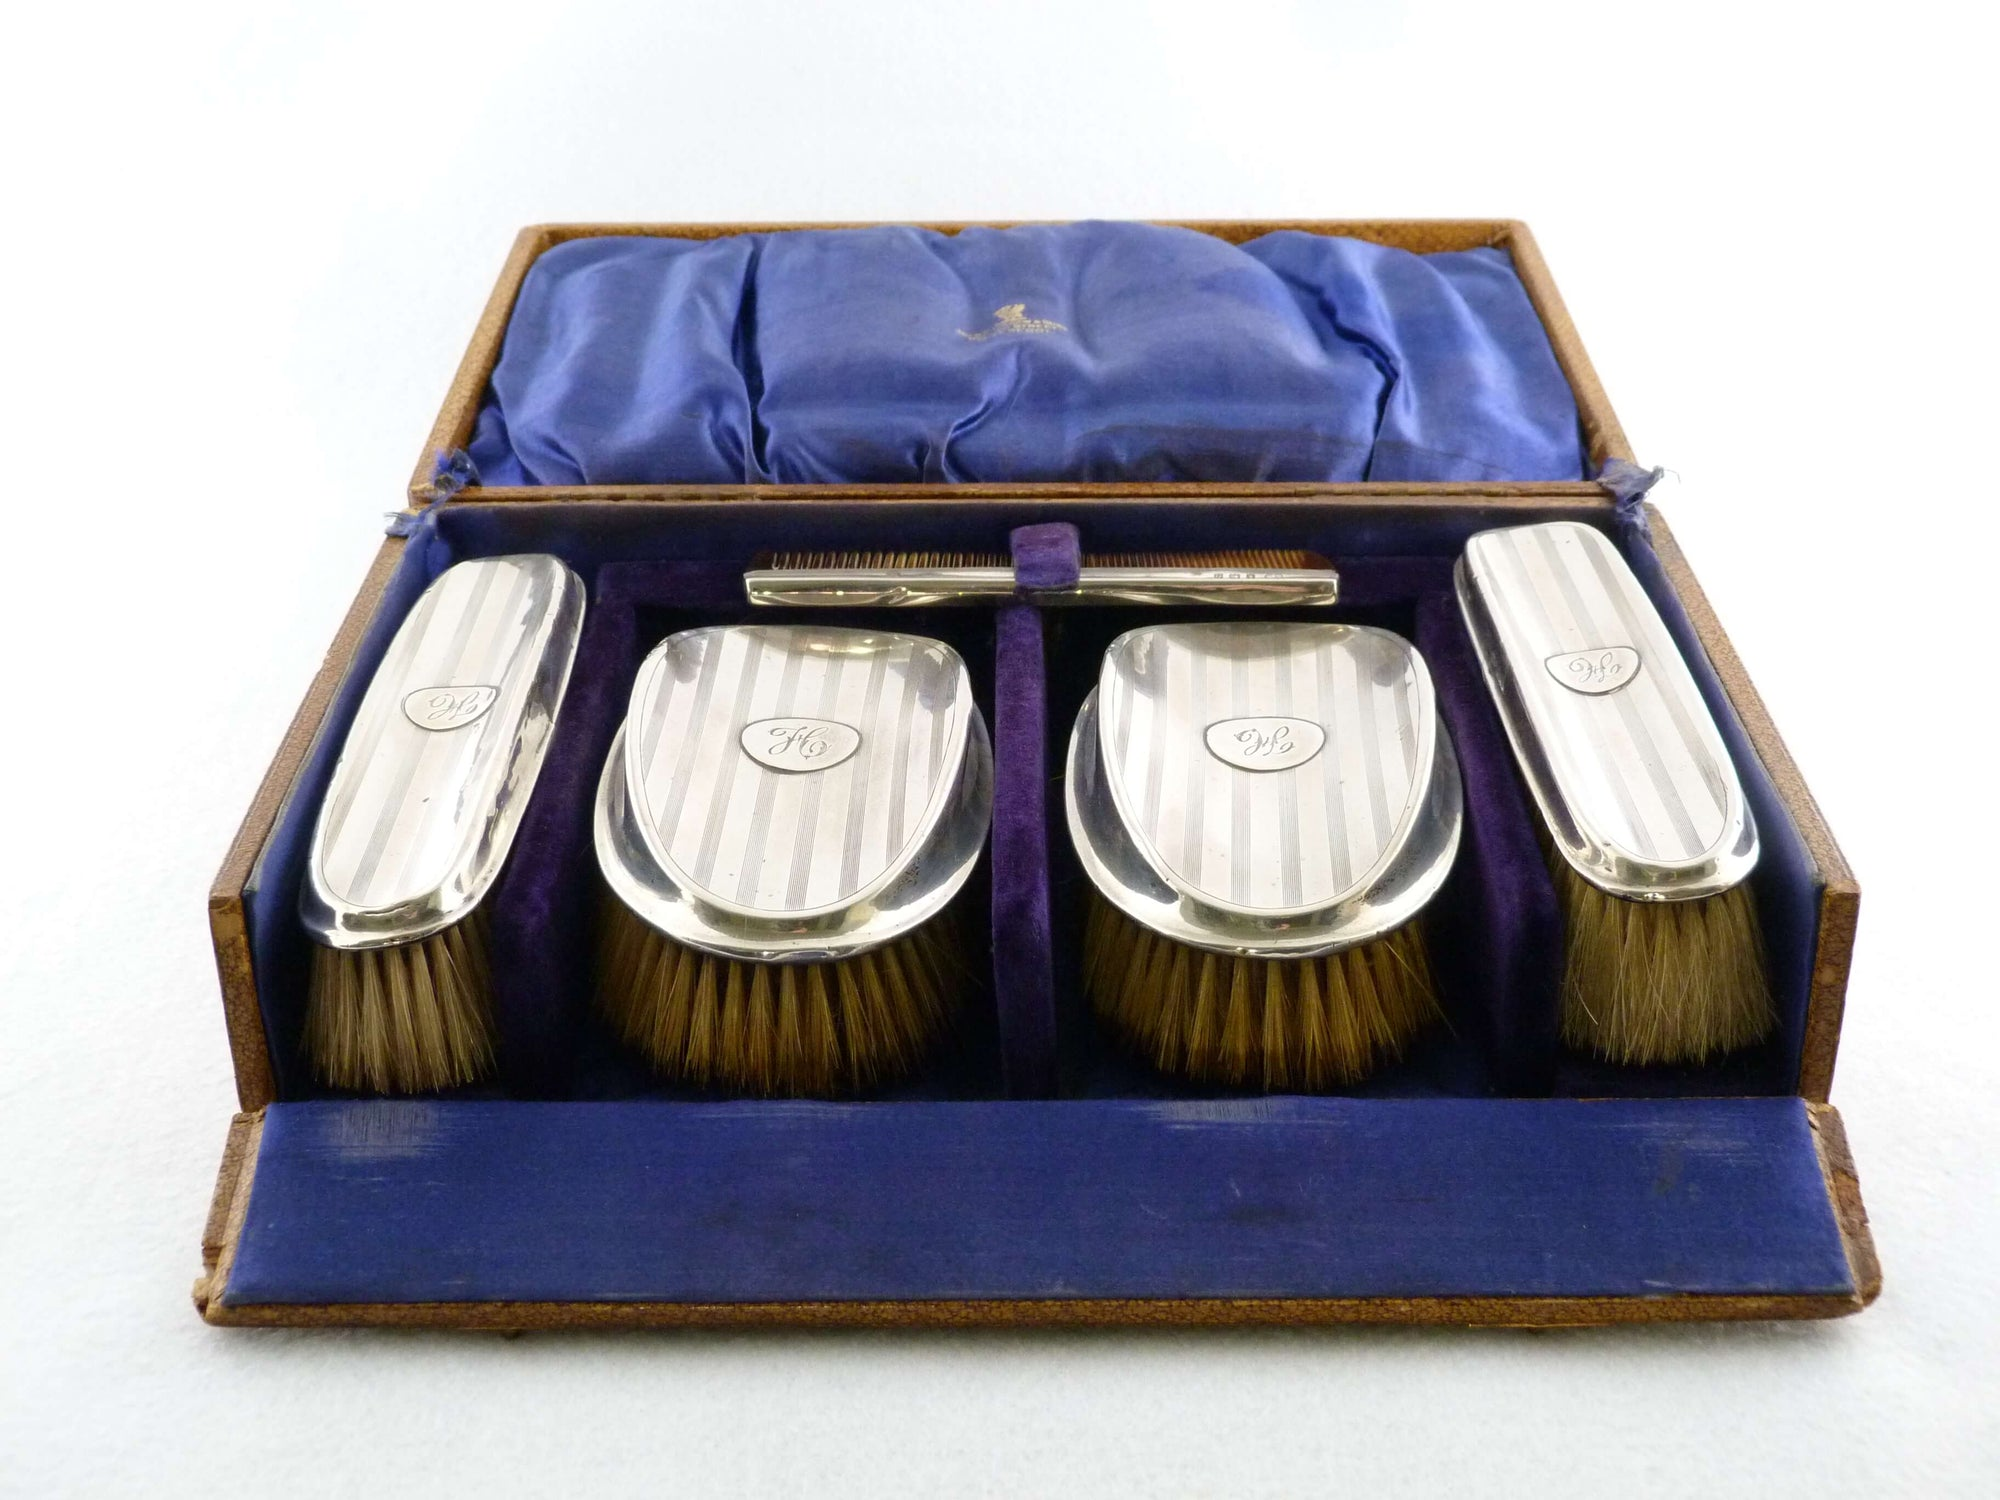 Sterling Silver Men's Grooming Set, Birmingham 1912, Original Box